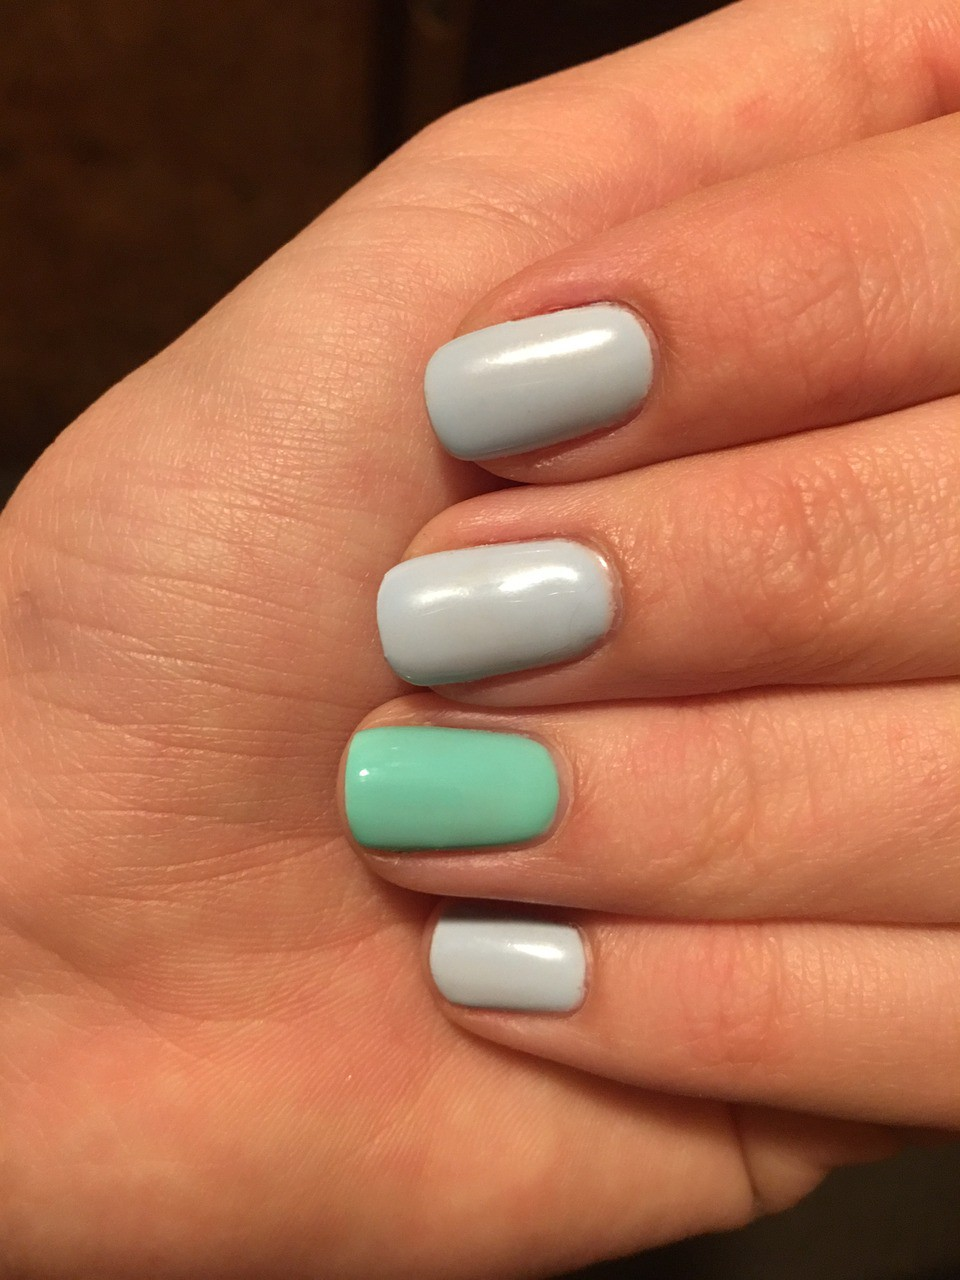 My Nails are very week could not grow fast? - Spa - Medium